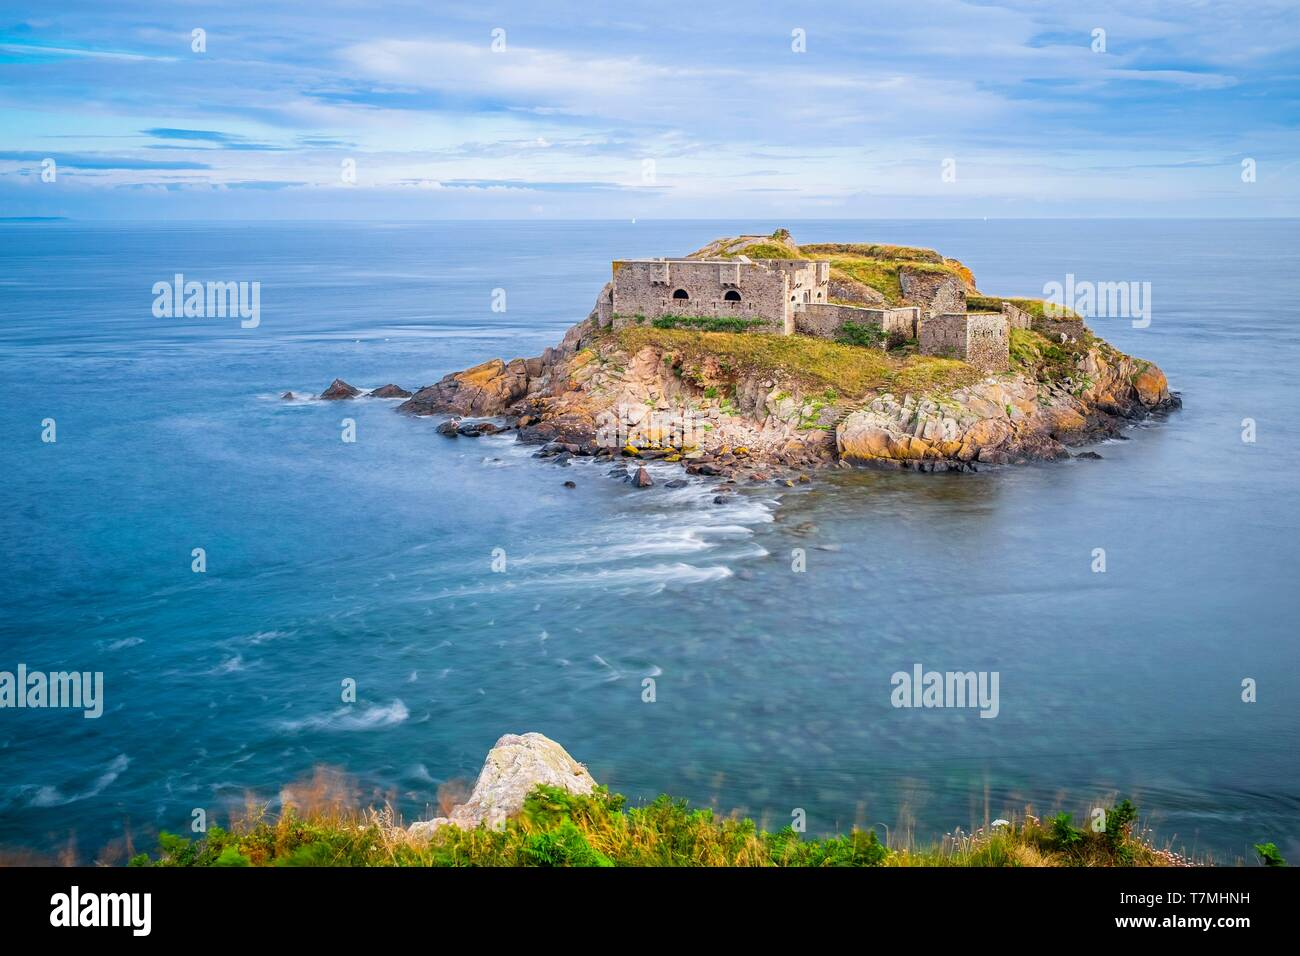 France, Finistere, Le Conquet, Kermorvan peninsula, fort of Kermorvan islet Stock Photo